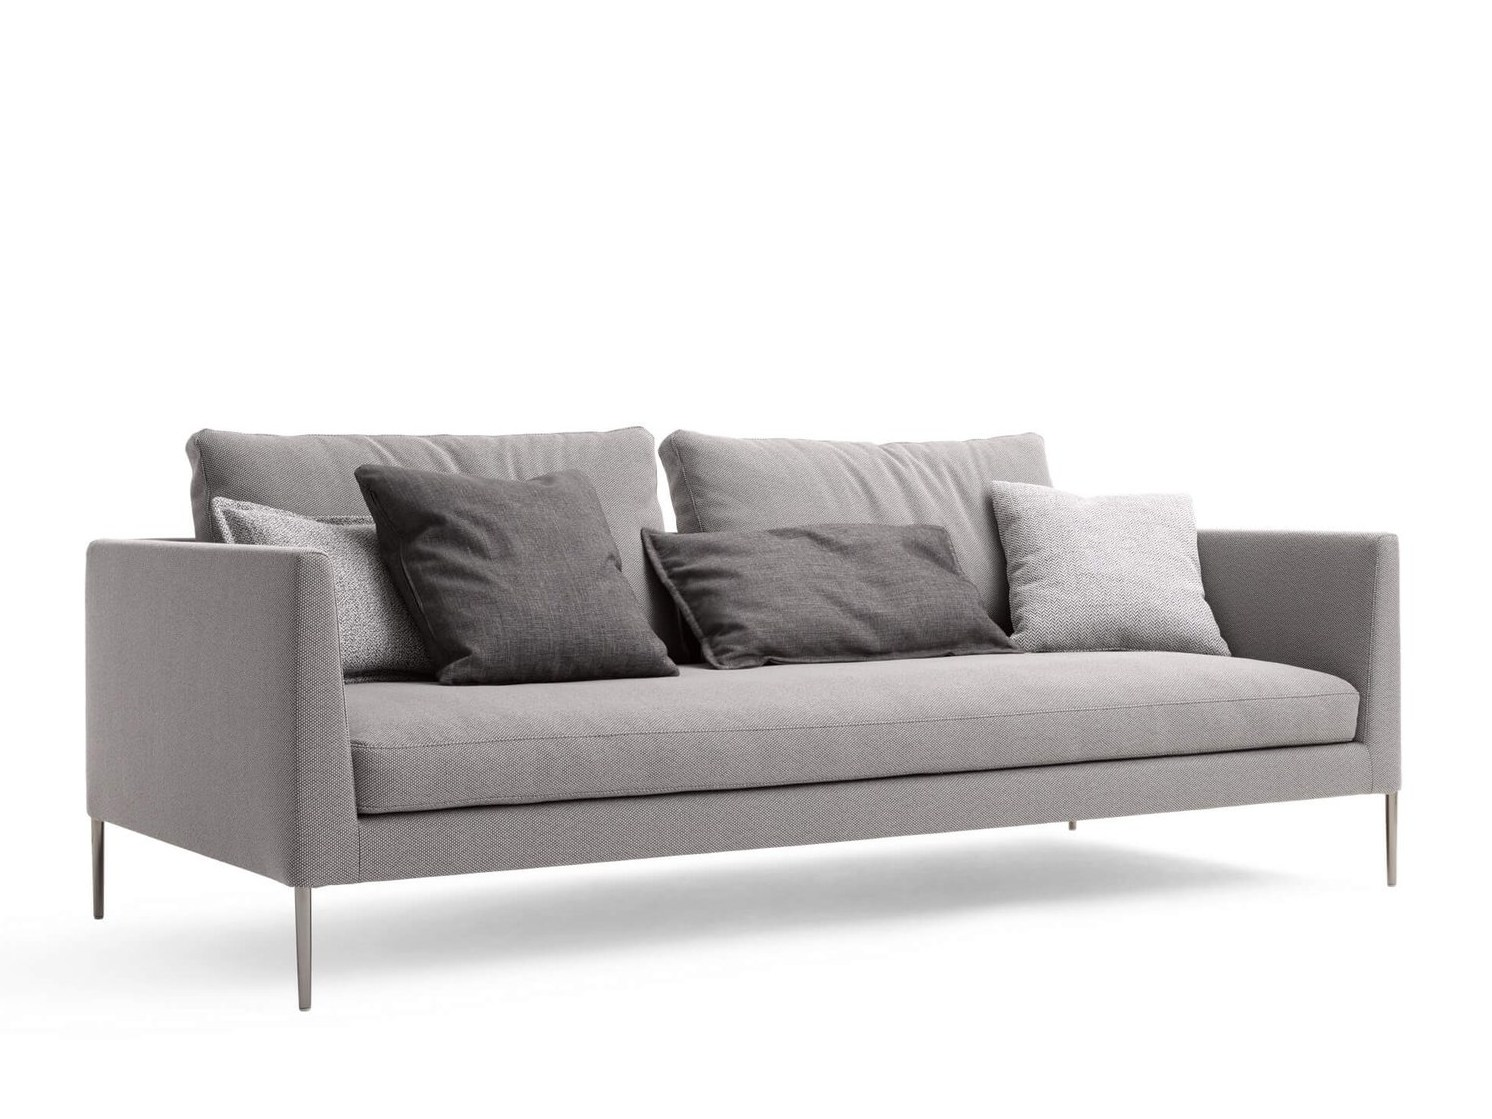 pilotis sofa by cor design metrica